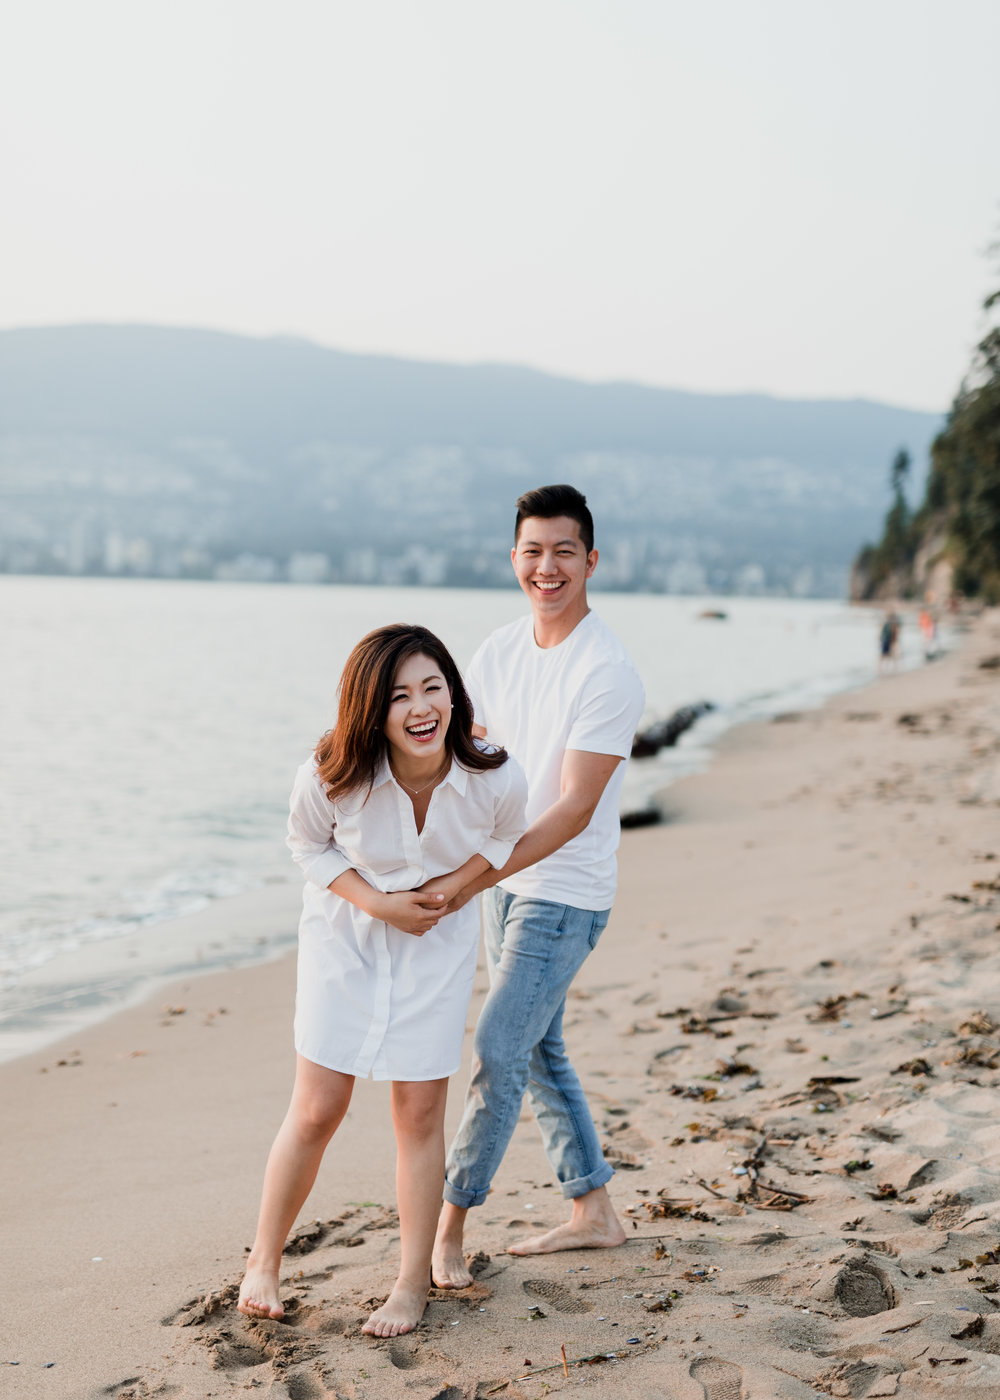 HeraStudios_Selects_Full_DianaSungwoo_PreWedding-57.jpg